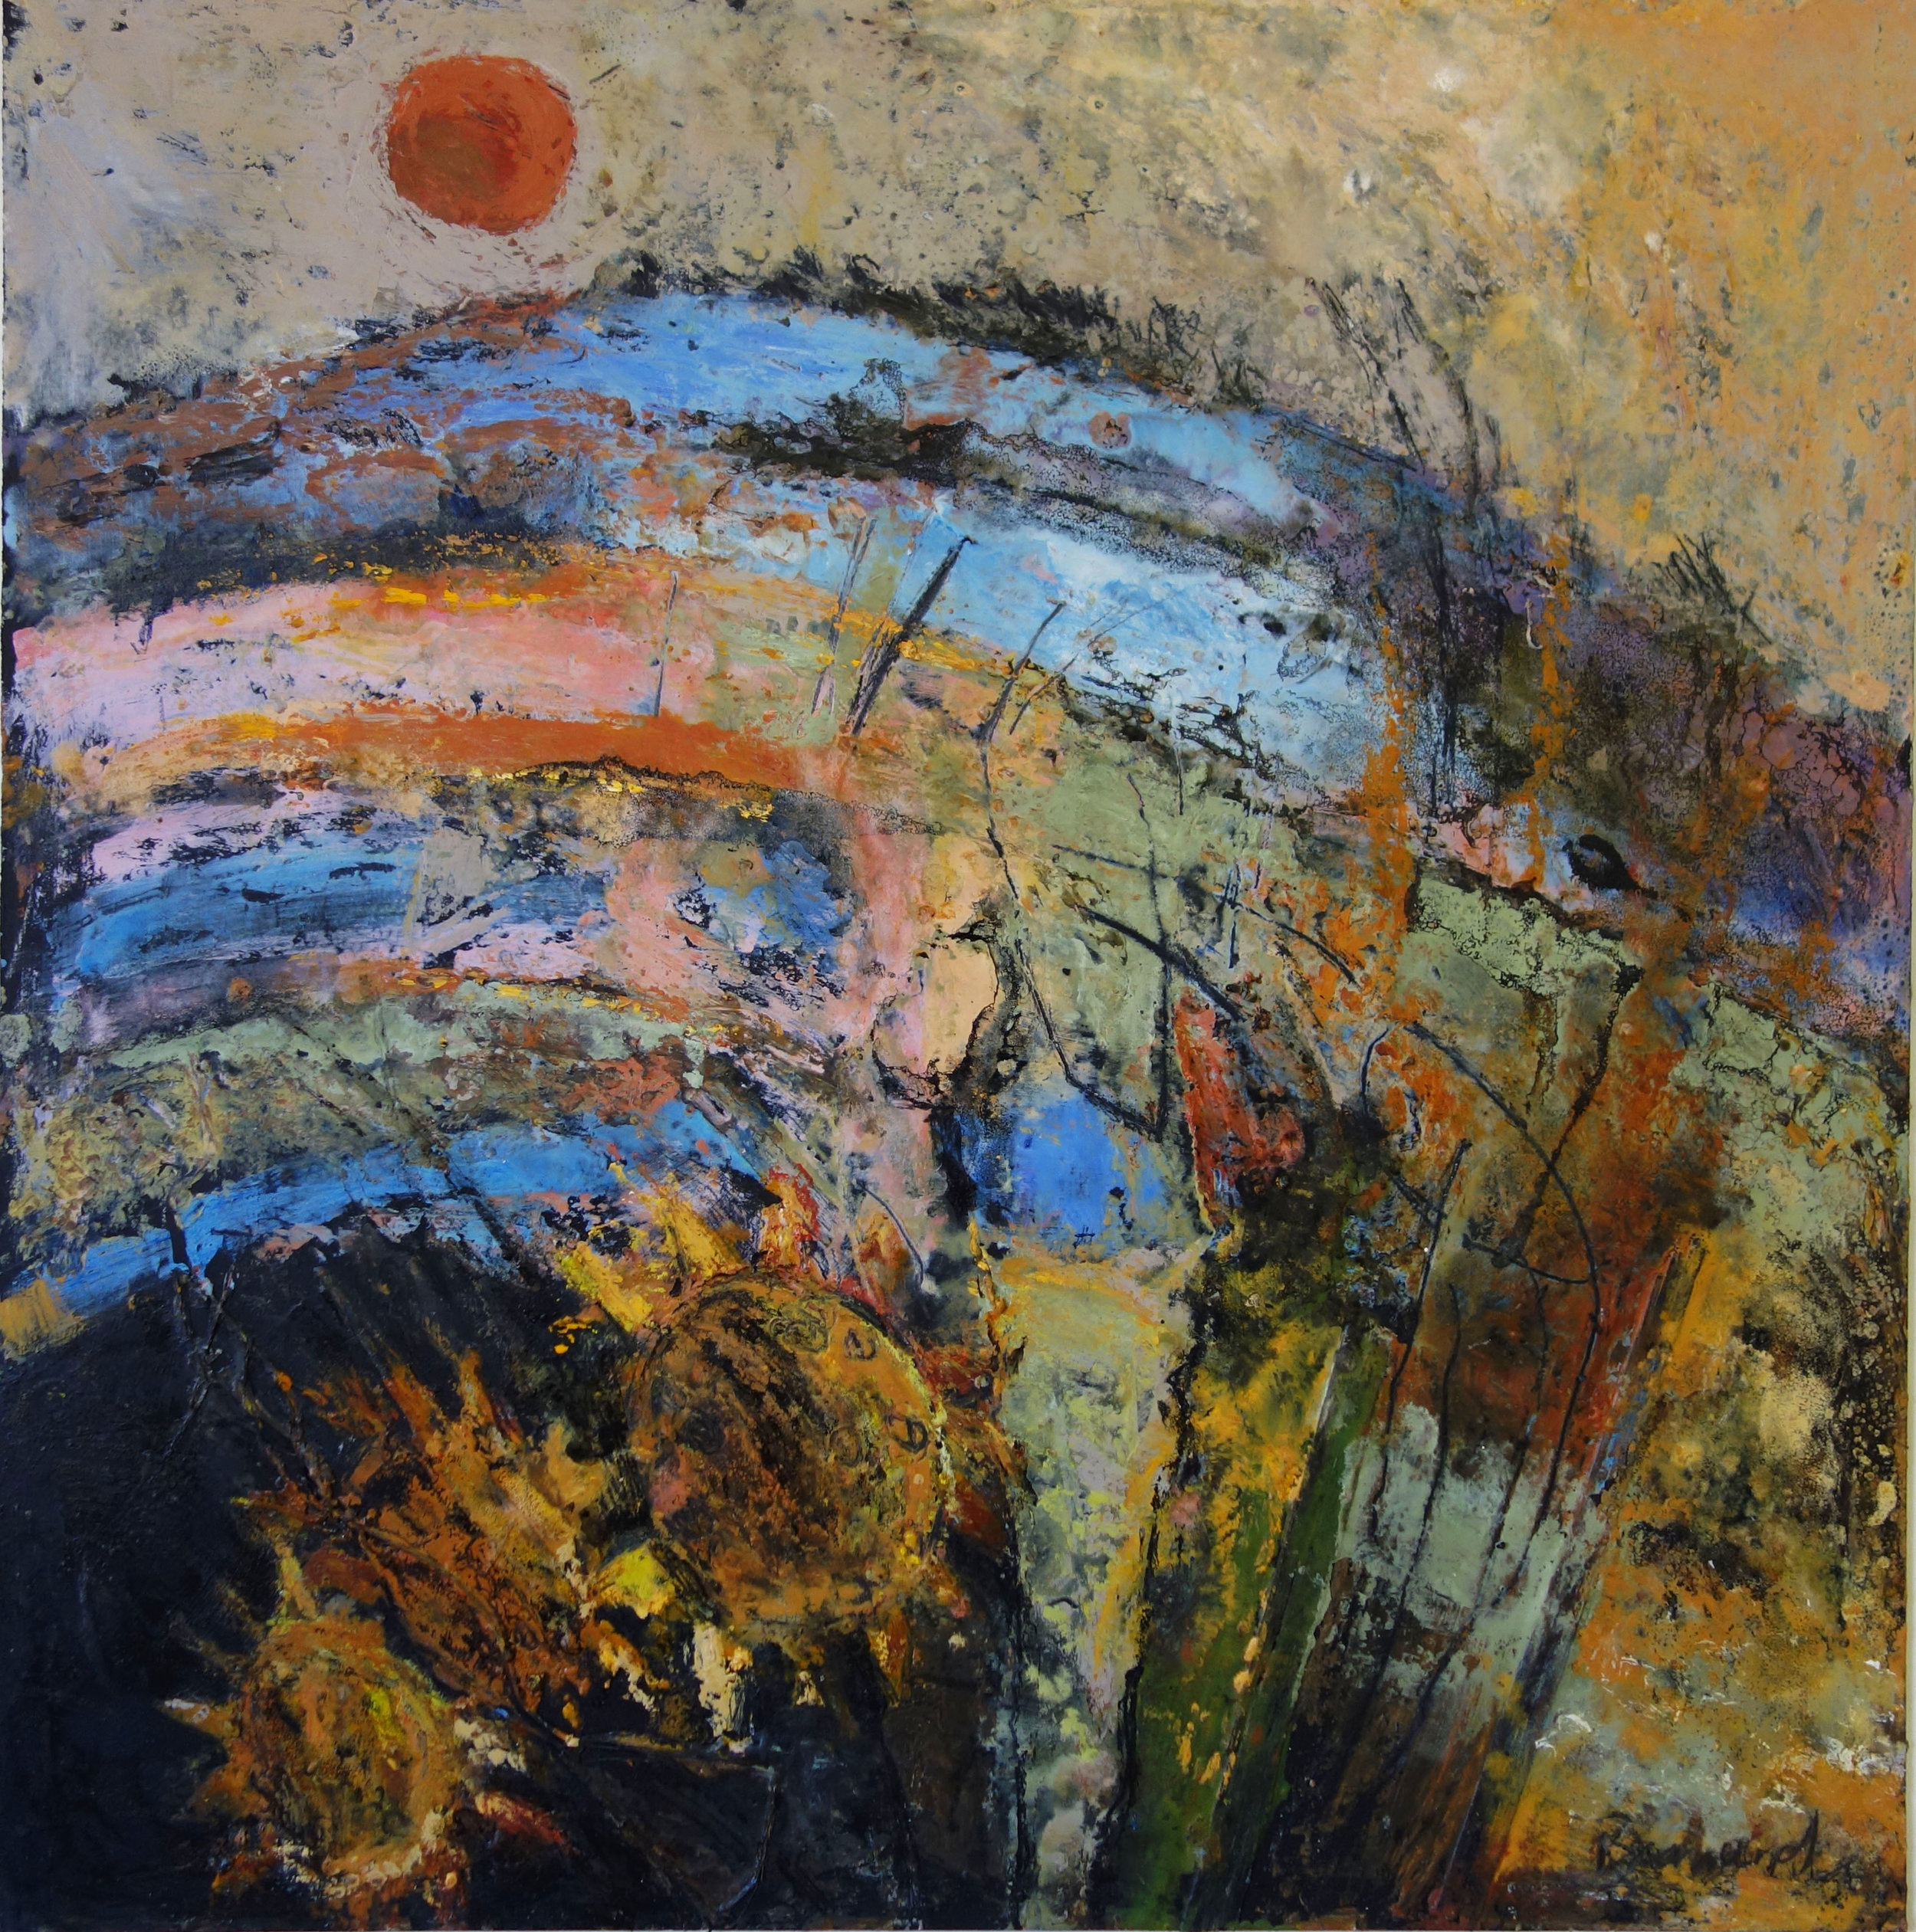 Blood Red Sun  oil based mixed media  68cm x 68cm  sold